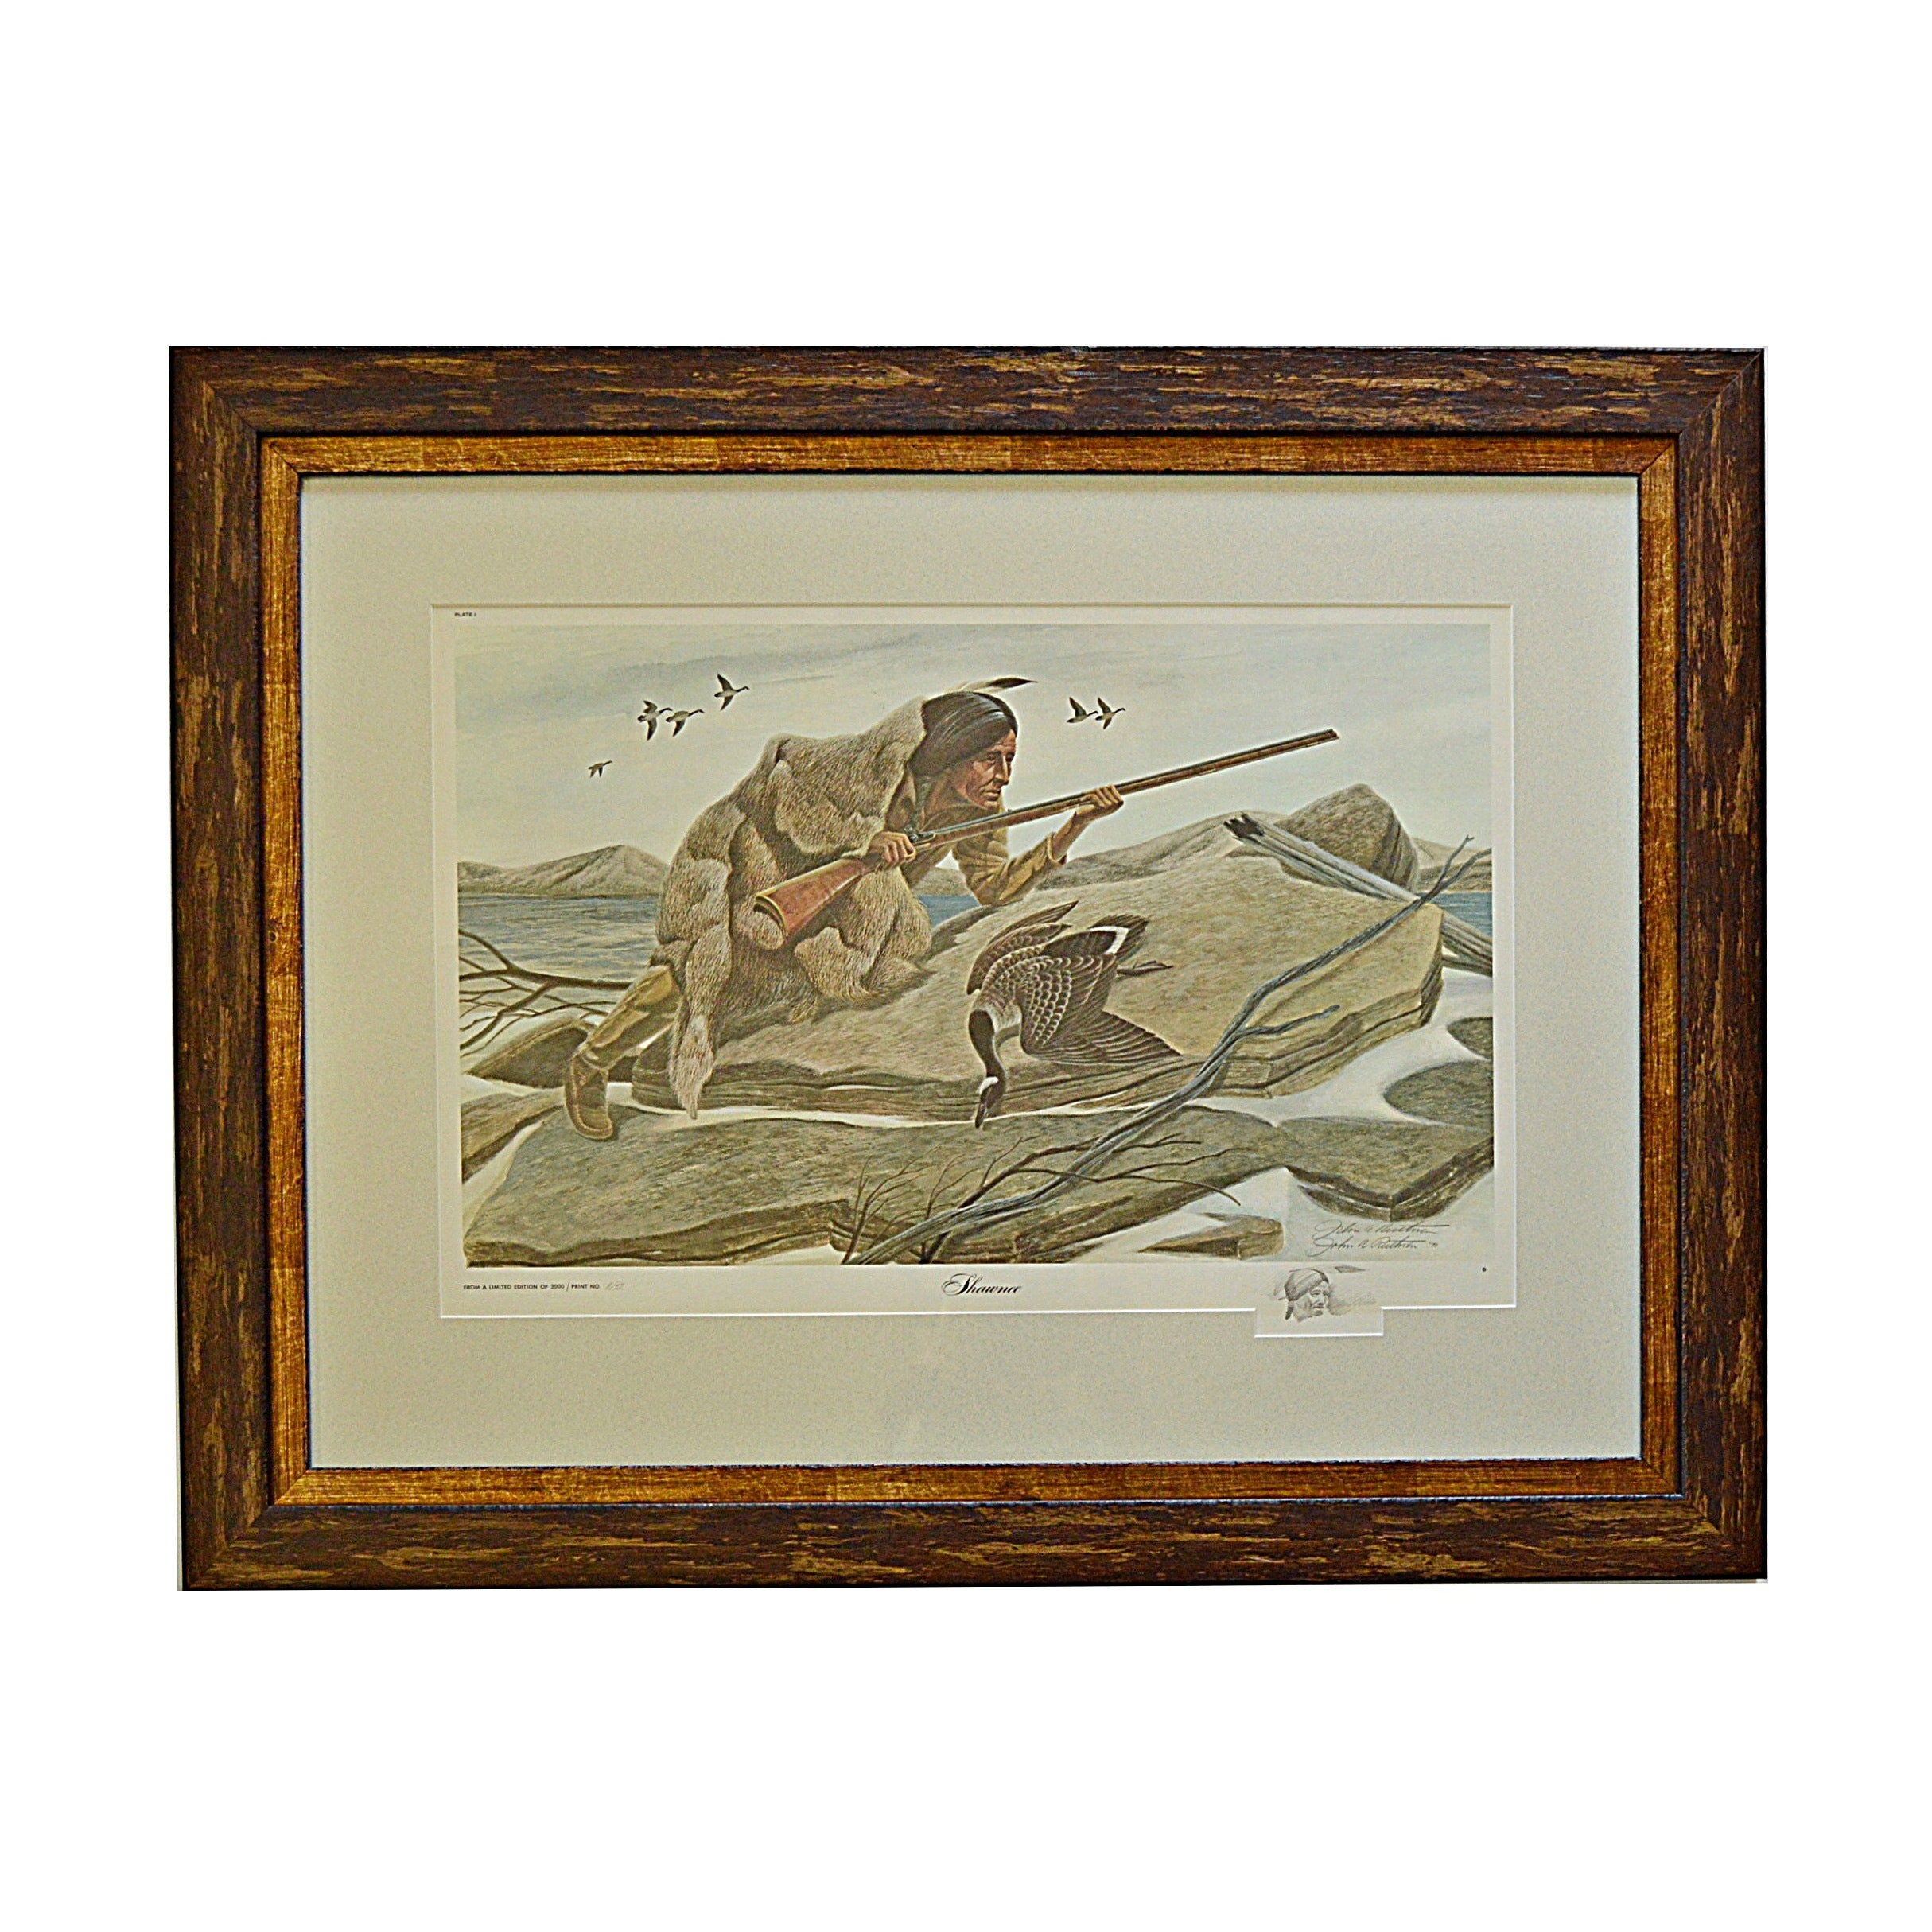 "John Ruthven Signed Limited Edition Offset Lithograph with Remarque ""Shawnee"""